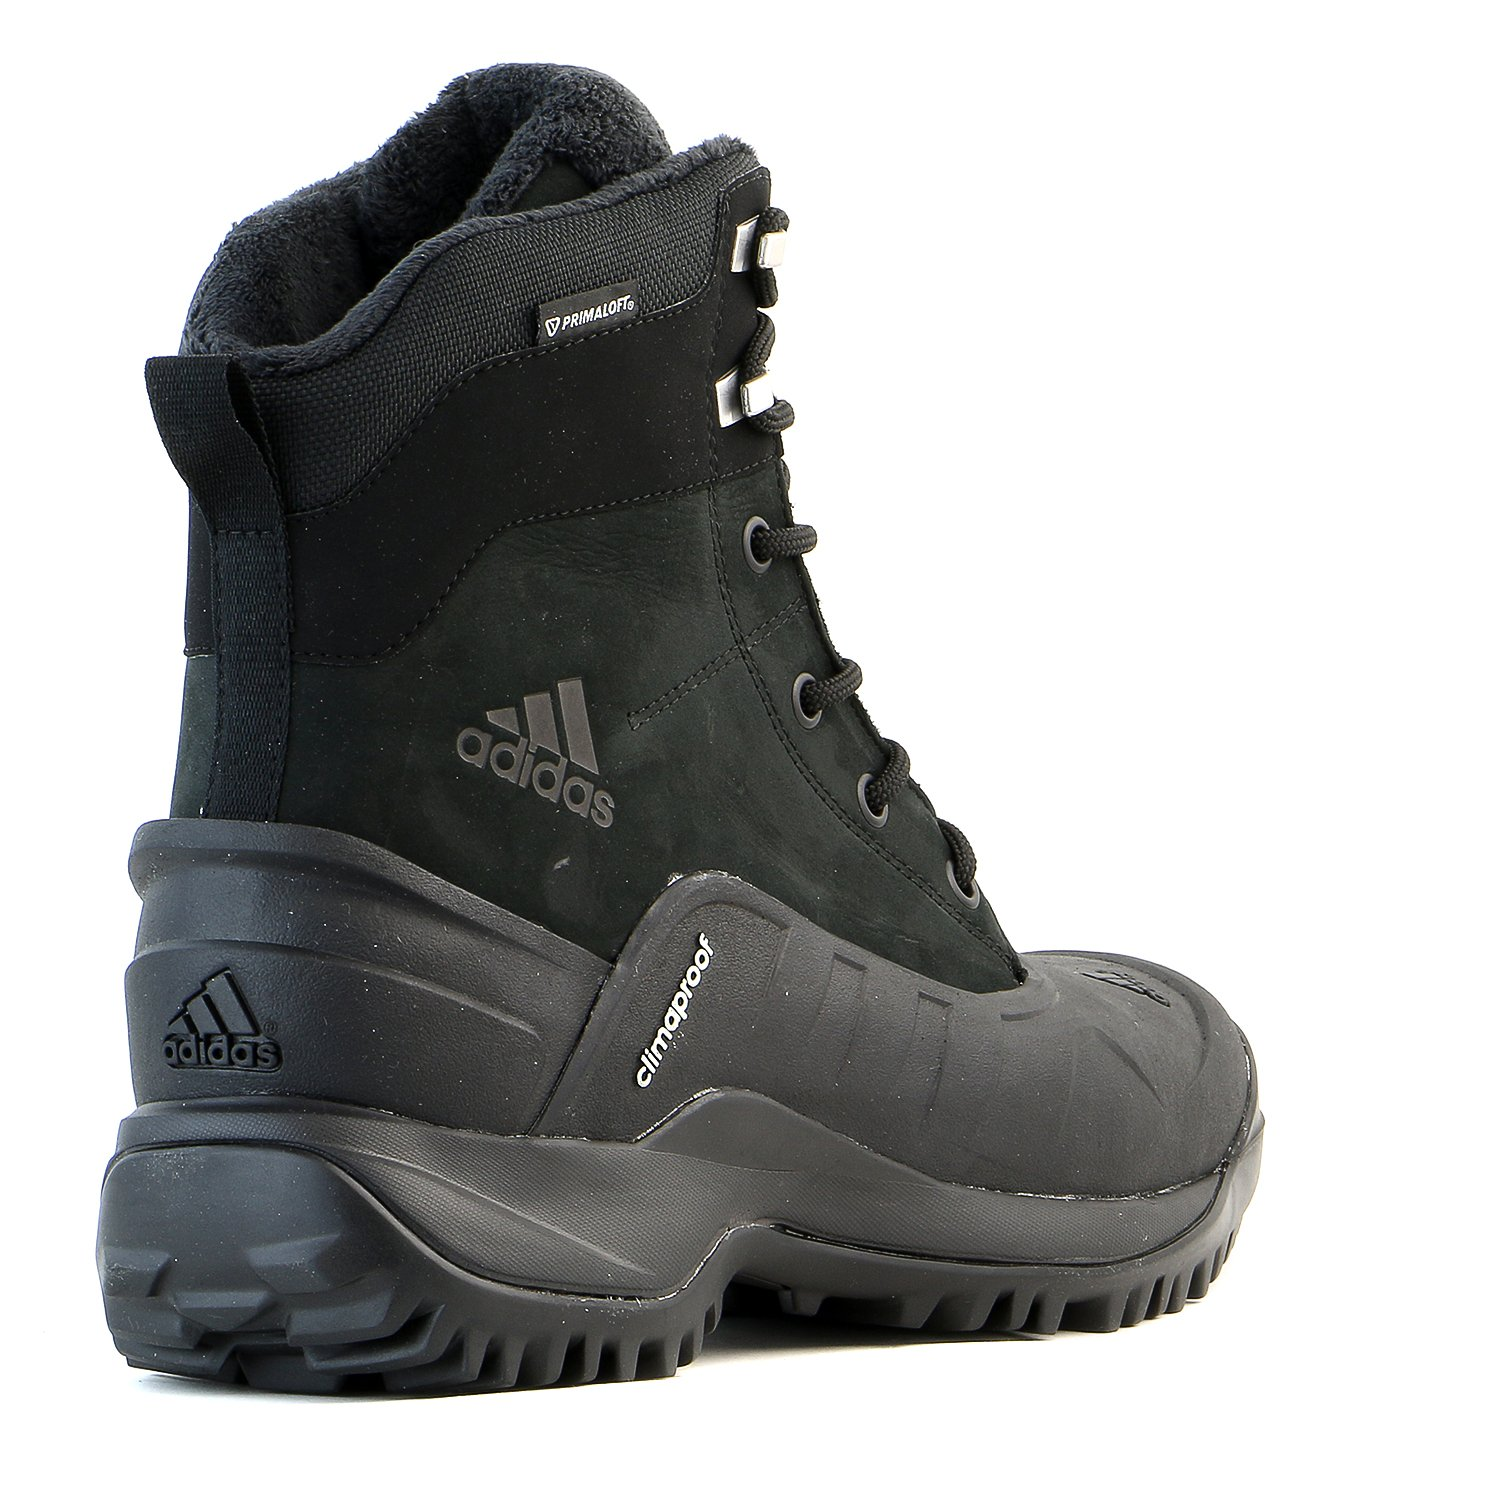 be266fa2af6 adidas Holtanna II CP Primaloft Boots - Craft Canvas Black Chalk 7 Black  Size  (M) US  Amazon.co.uk  Shoes   Bags